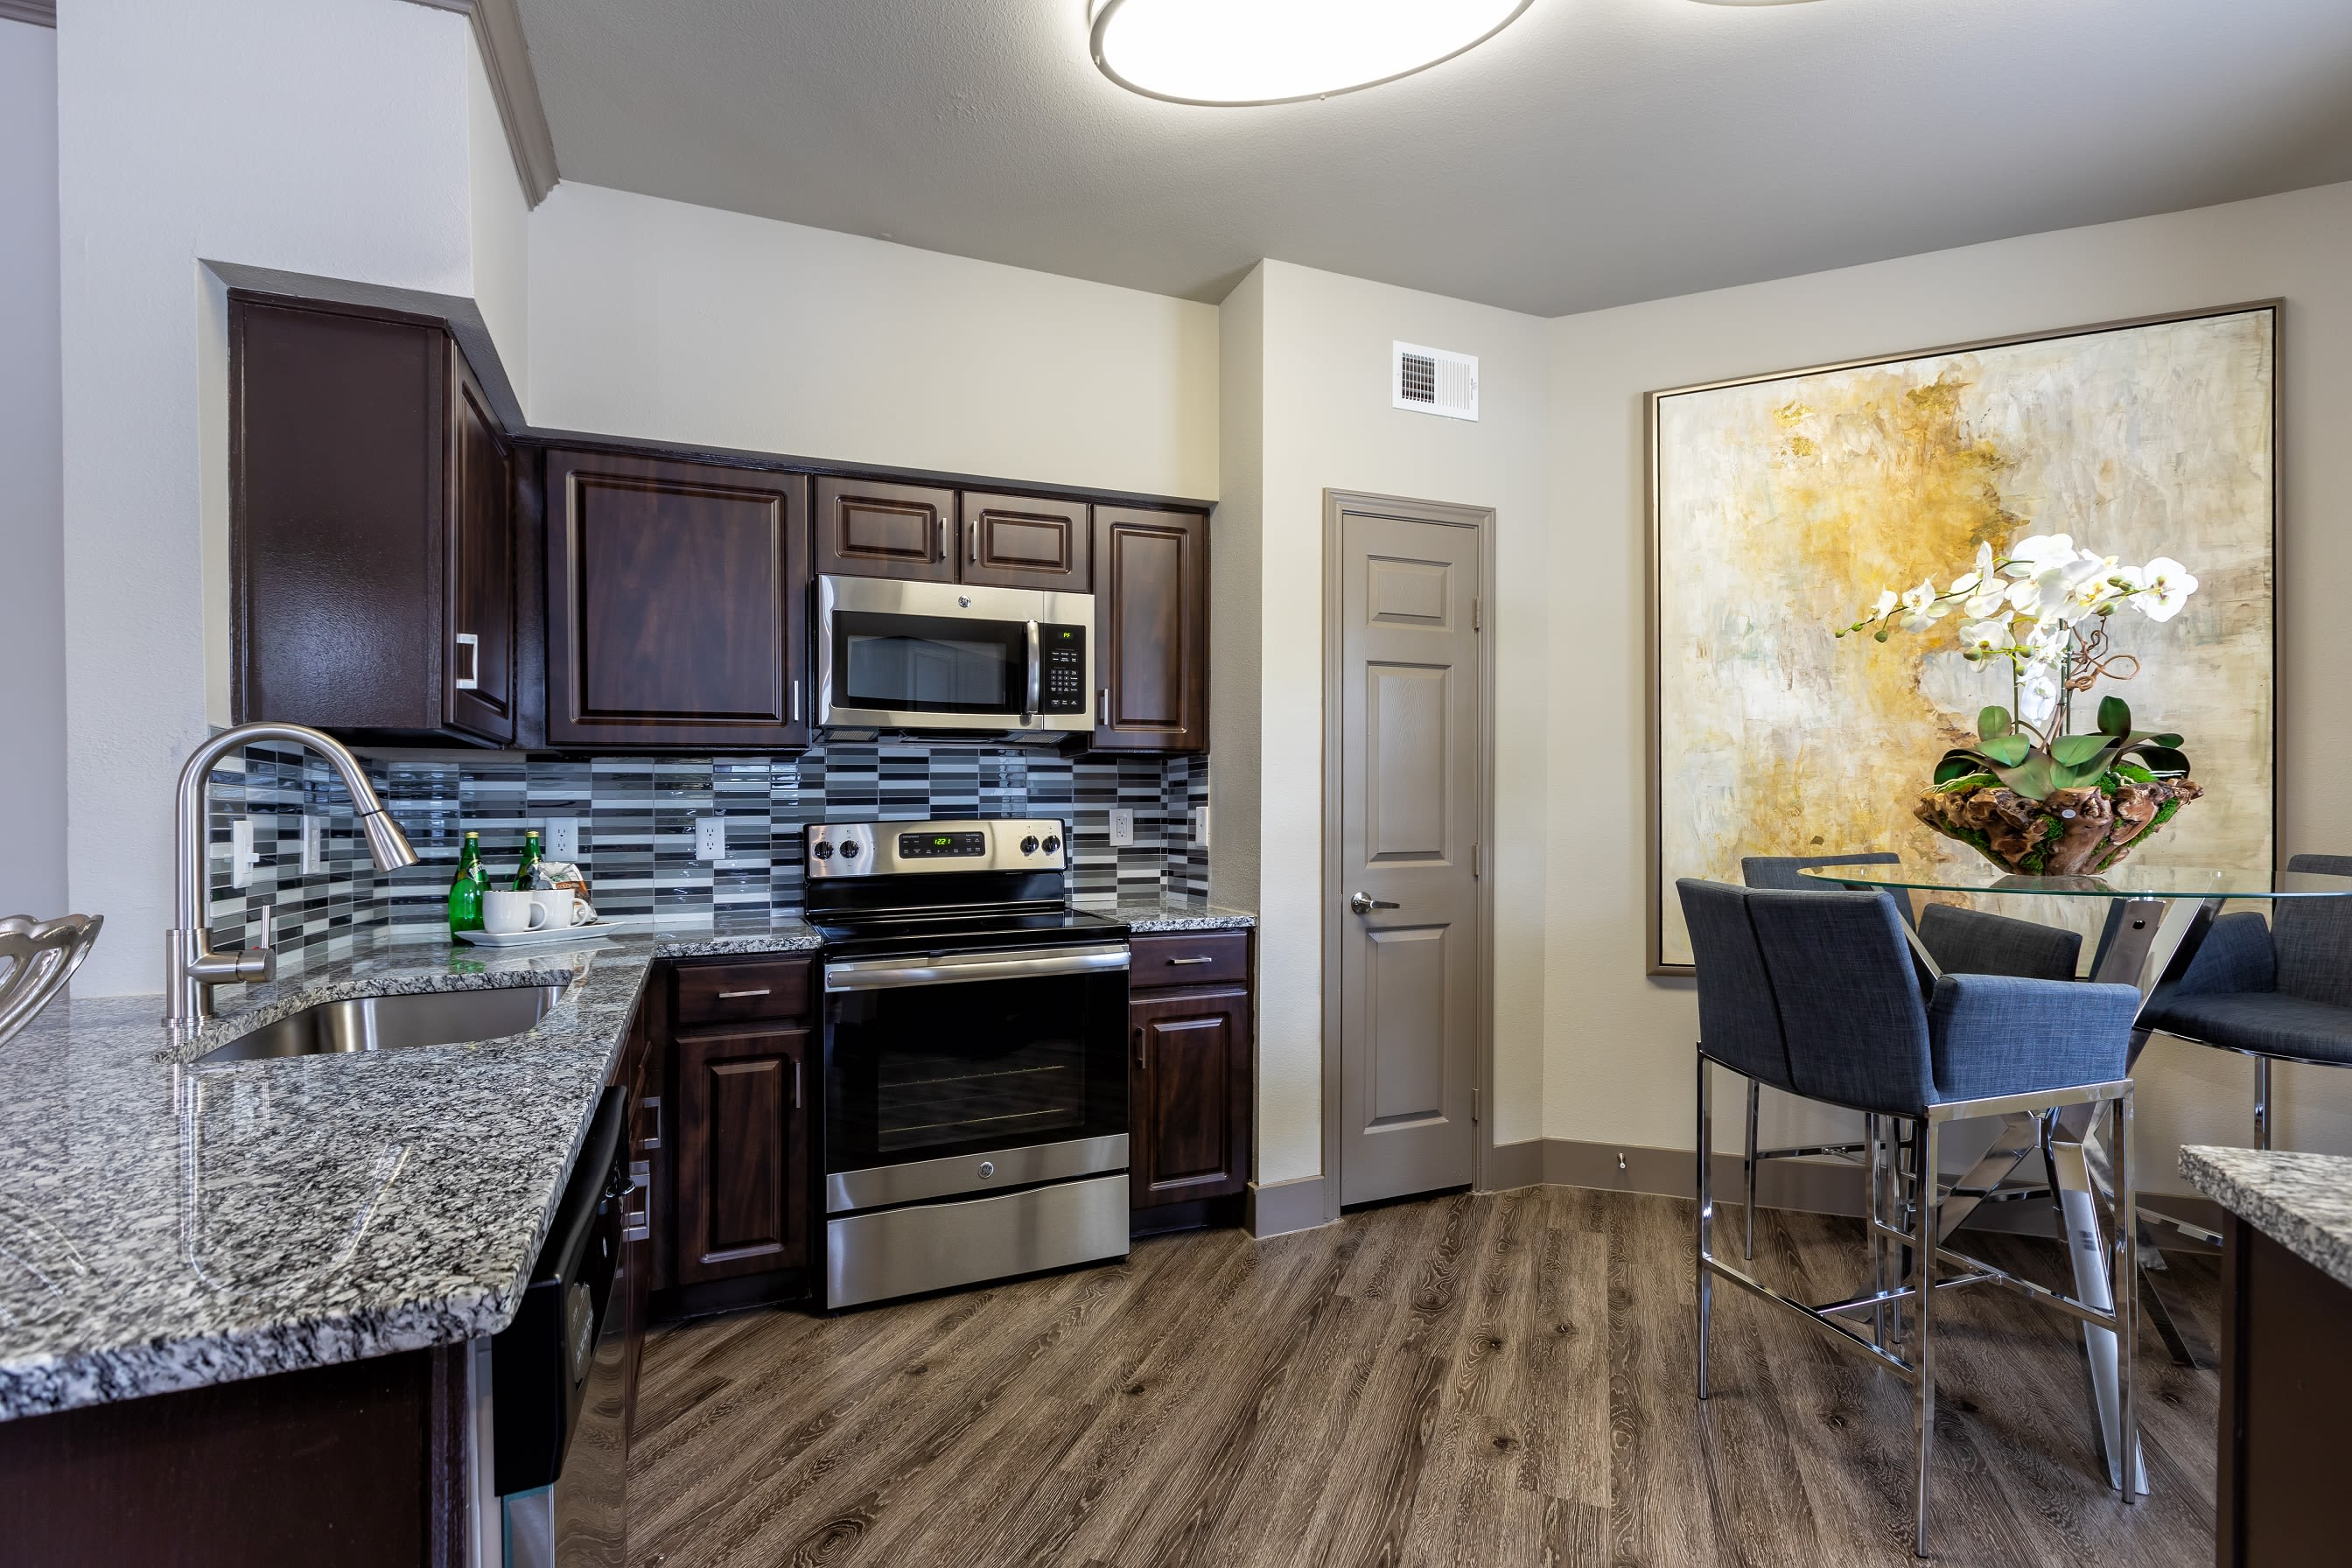 Open-concept layout with hardwood floors at Artisan at Lake Wyndemere in The Woodlands, Texas